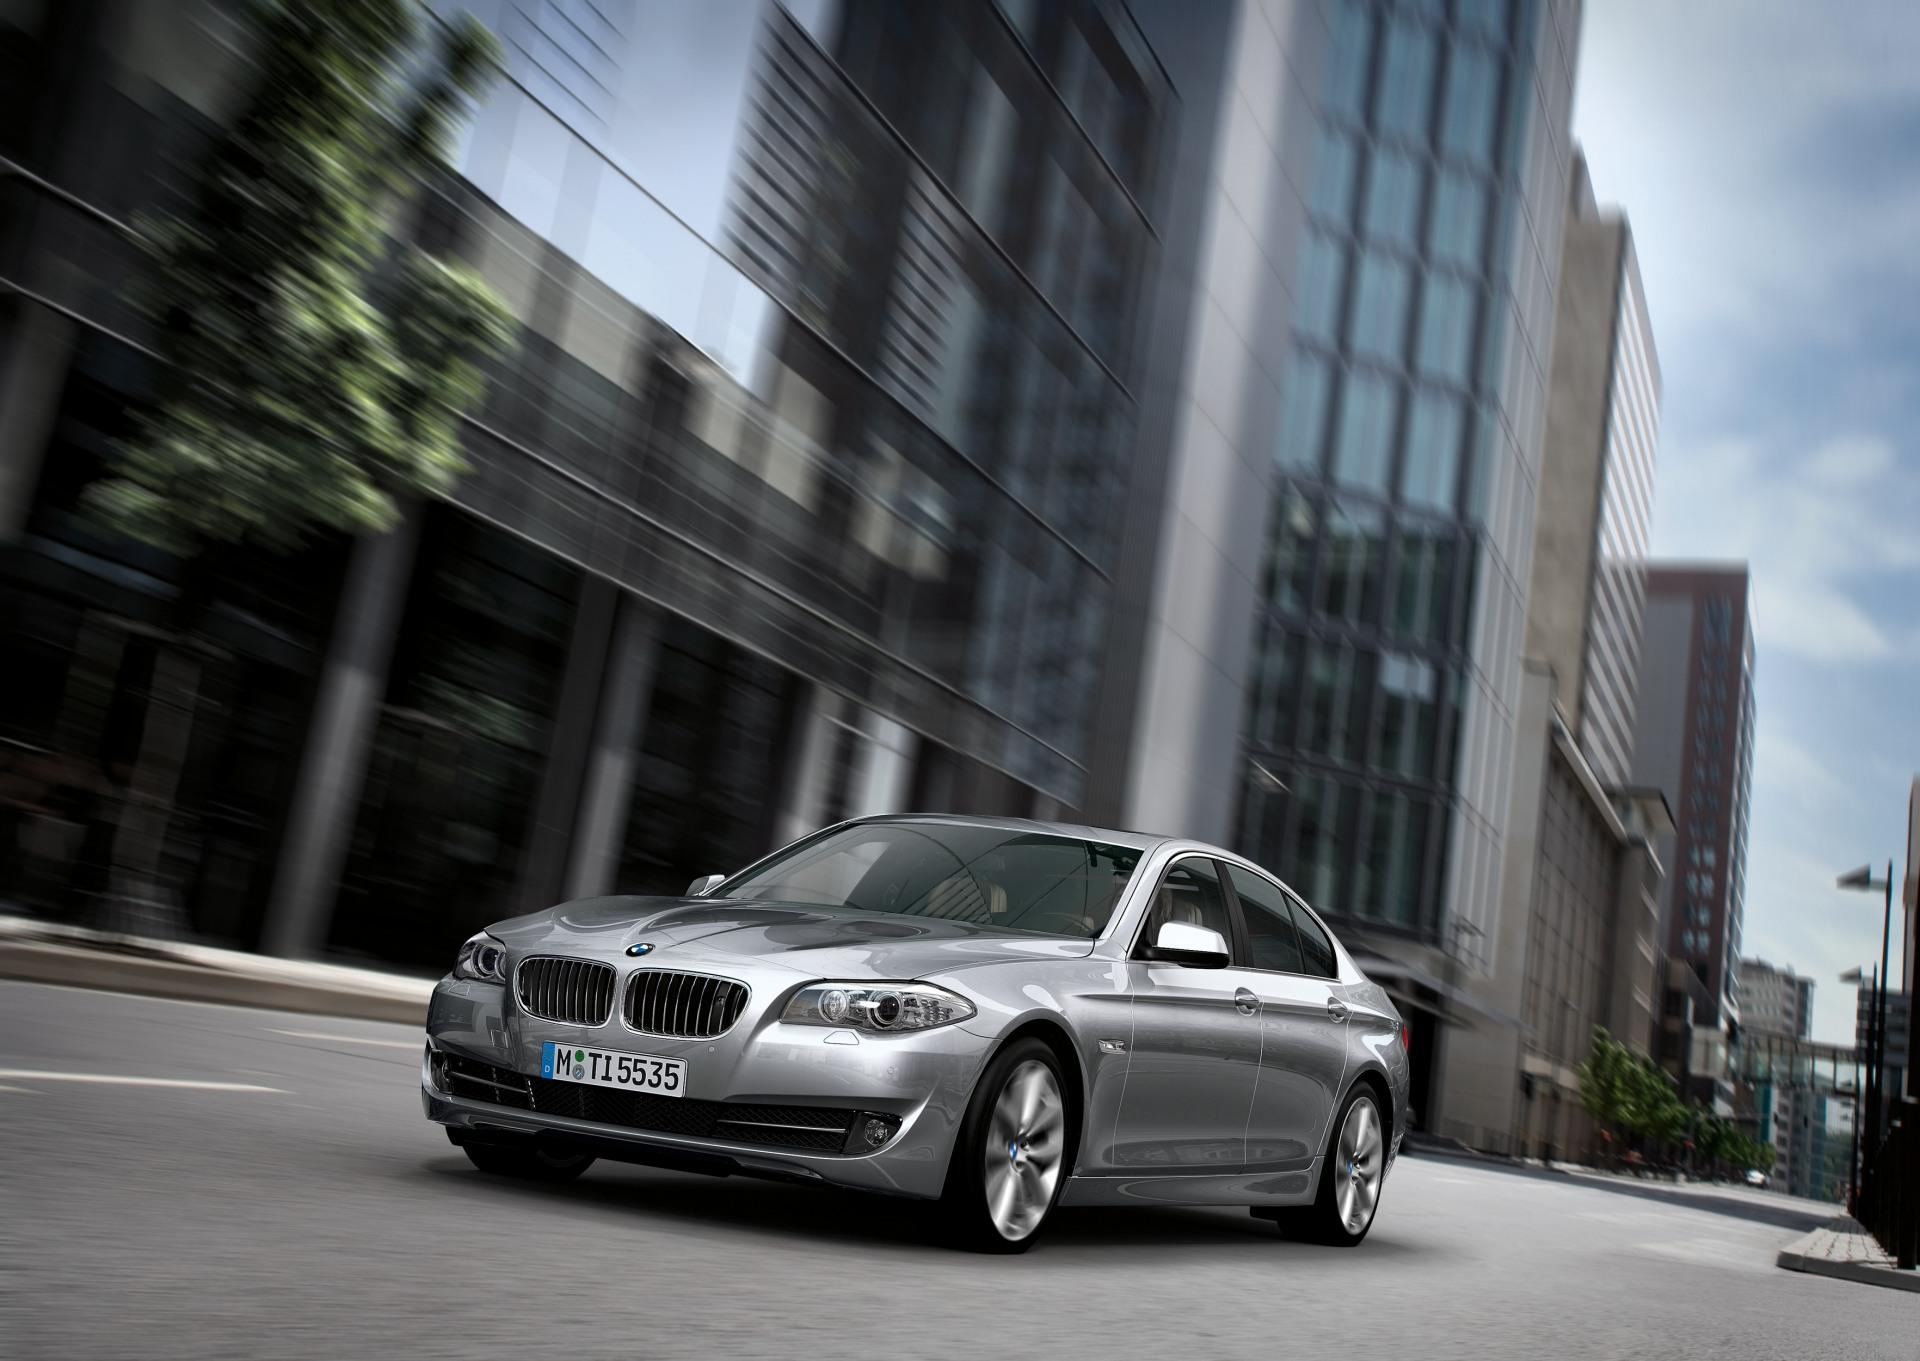 2011 BMW 5 Series Image